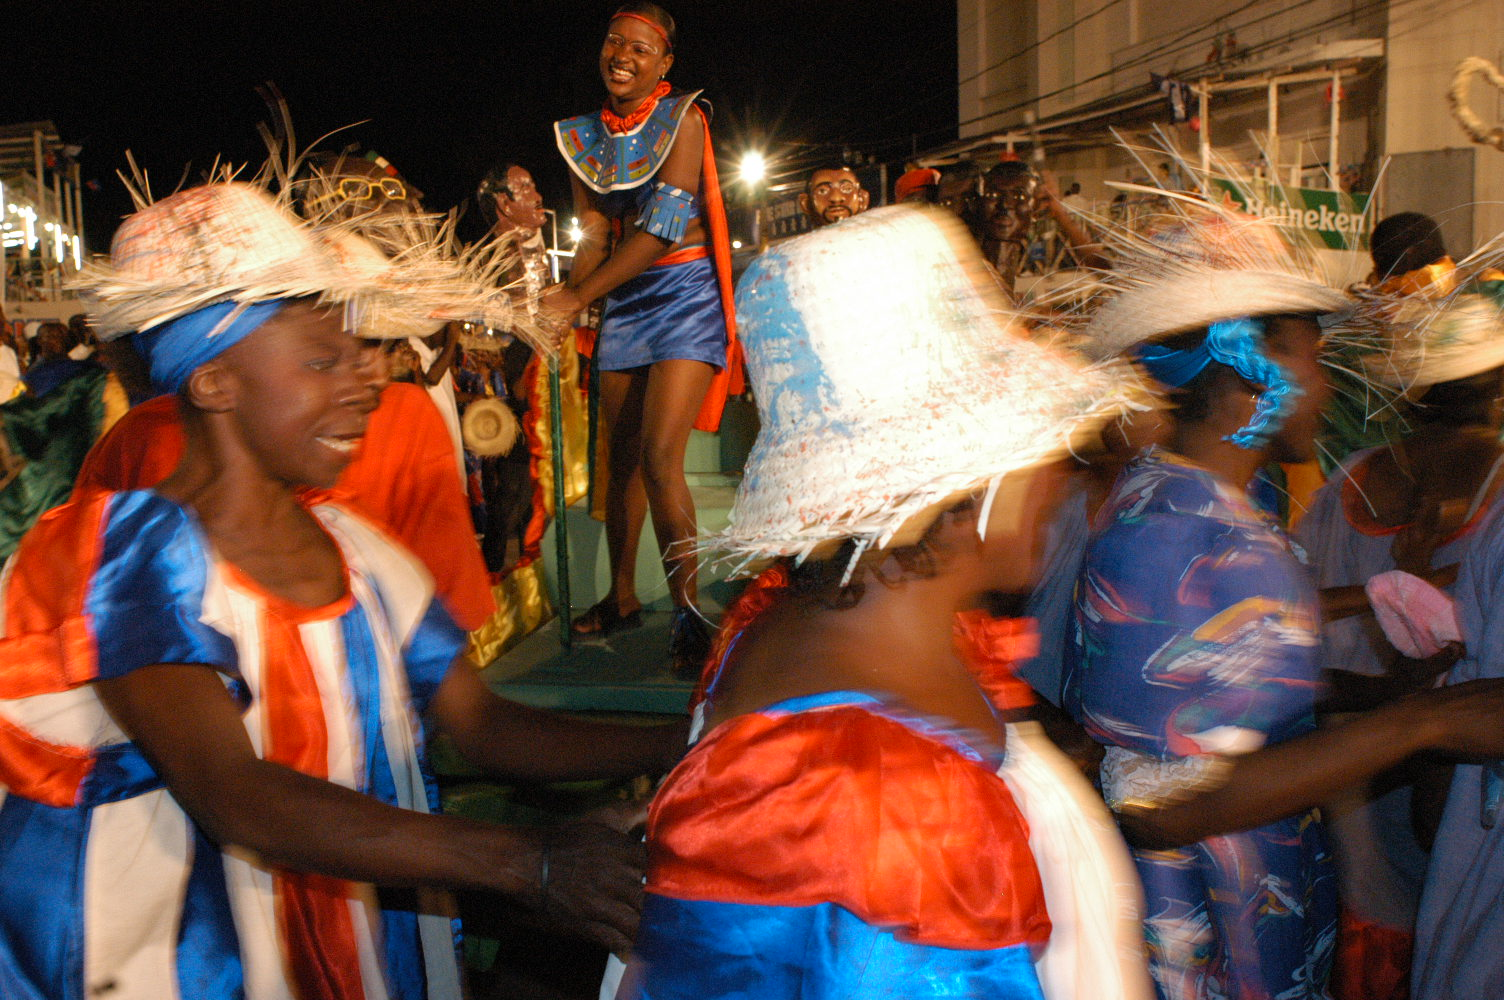 Haitians celebrate carnival on February 23, 2004 in Port-au-Prince as part of the 200th anniversary celebrations of the revolution which freed them from French rule.